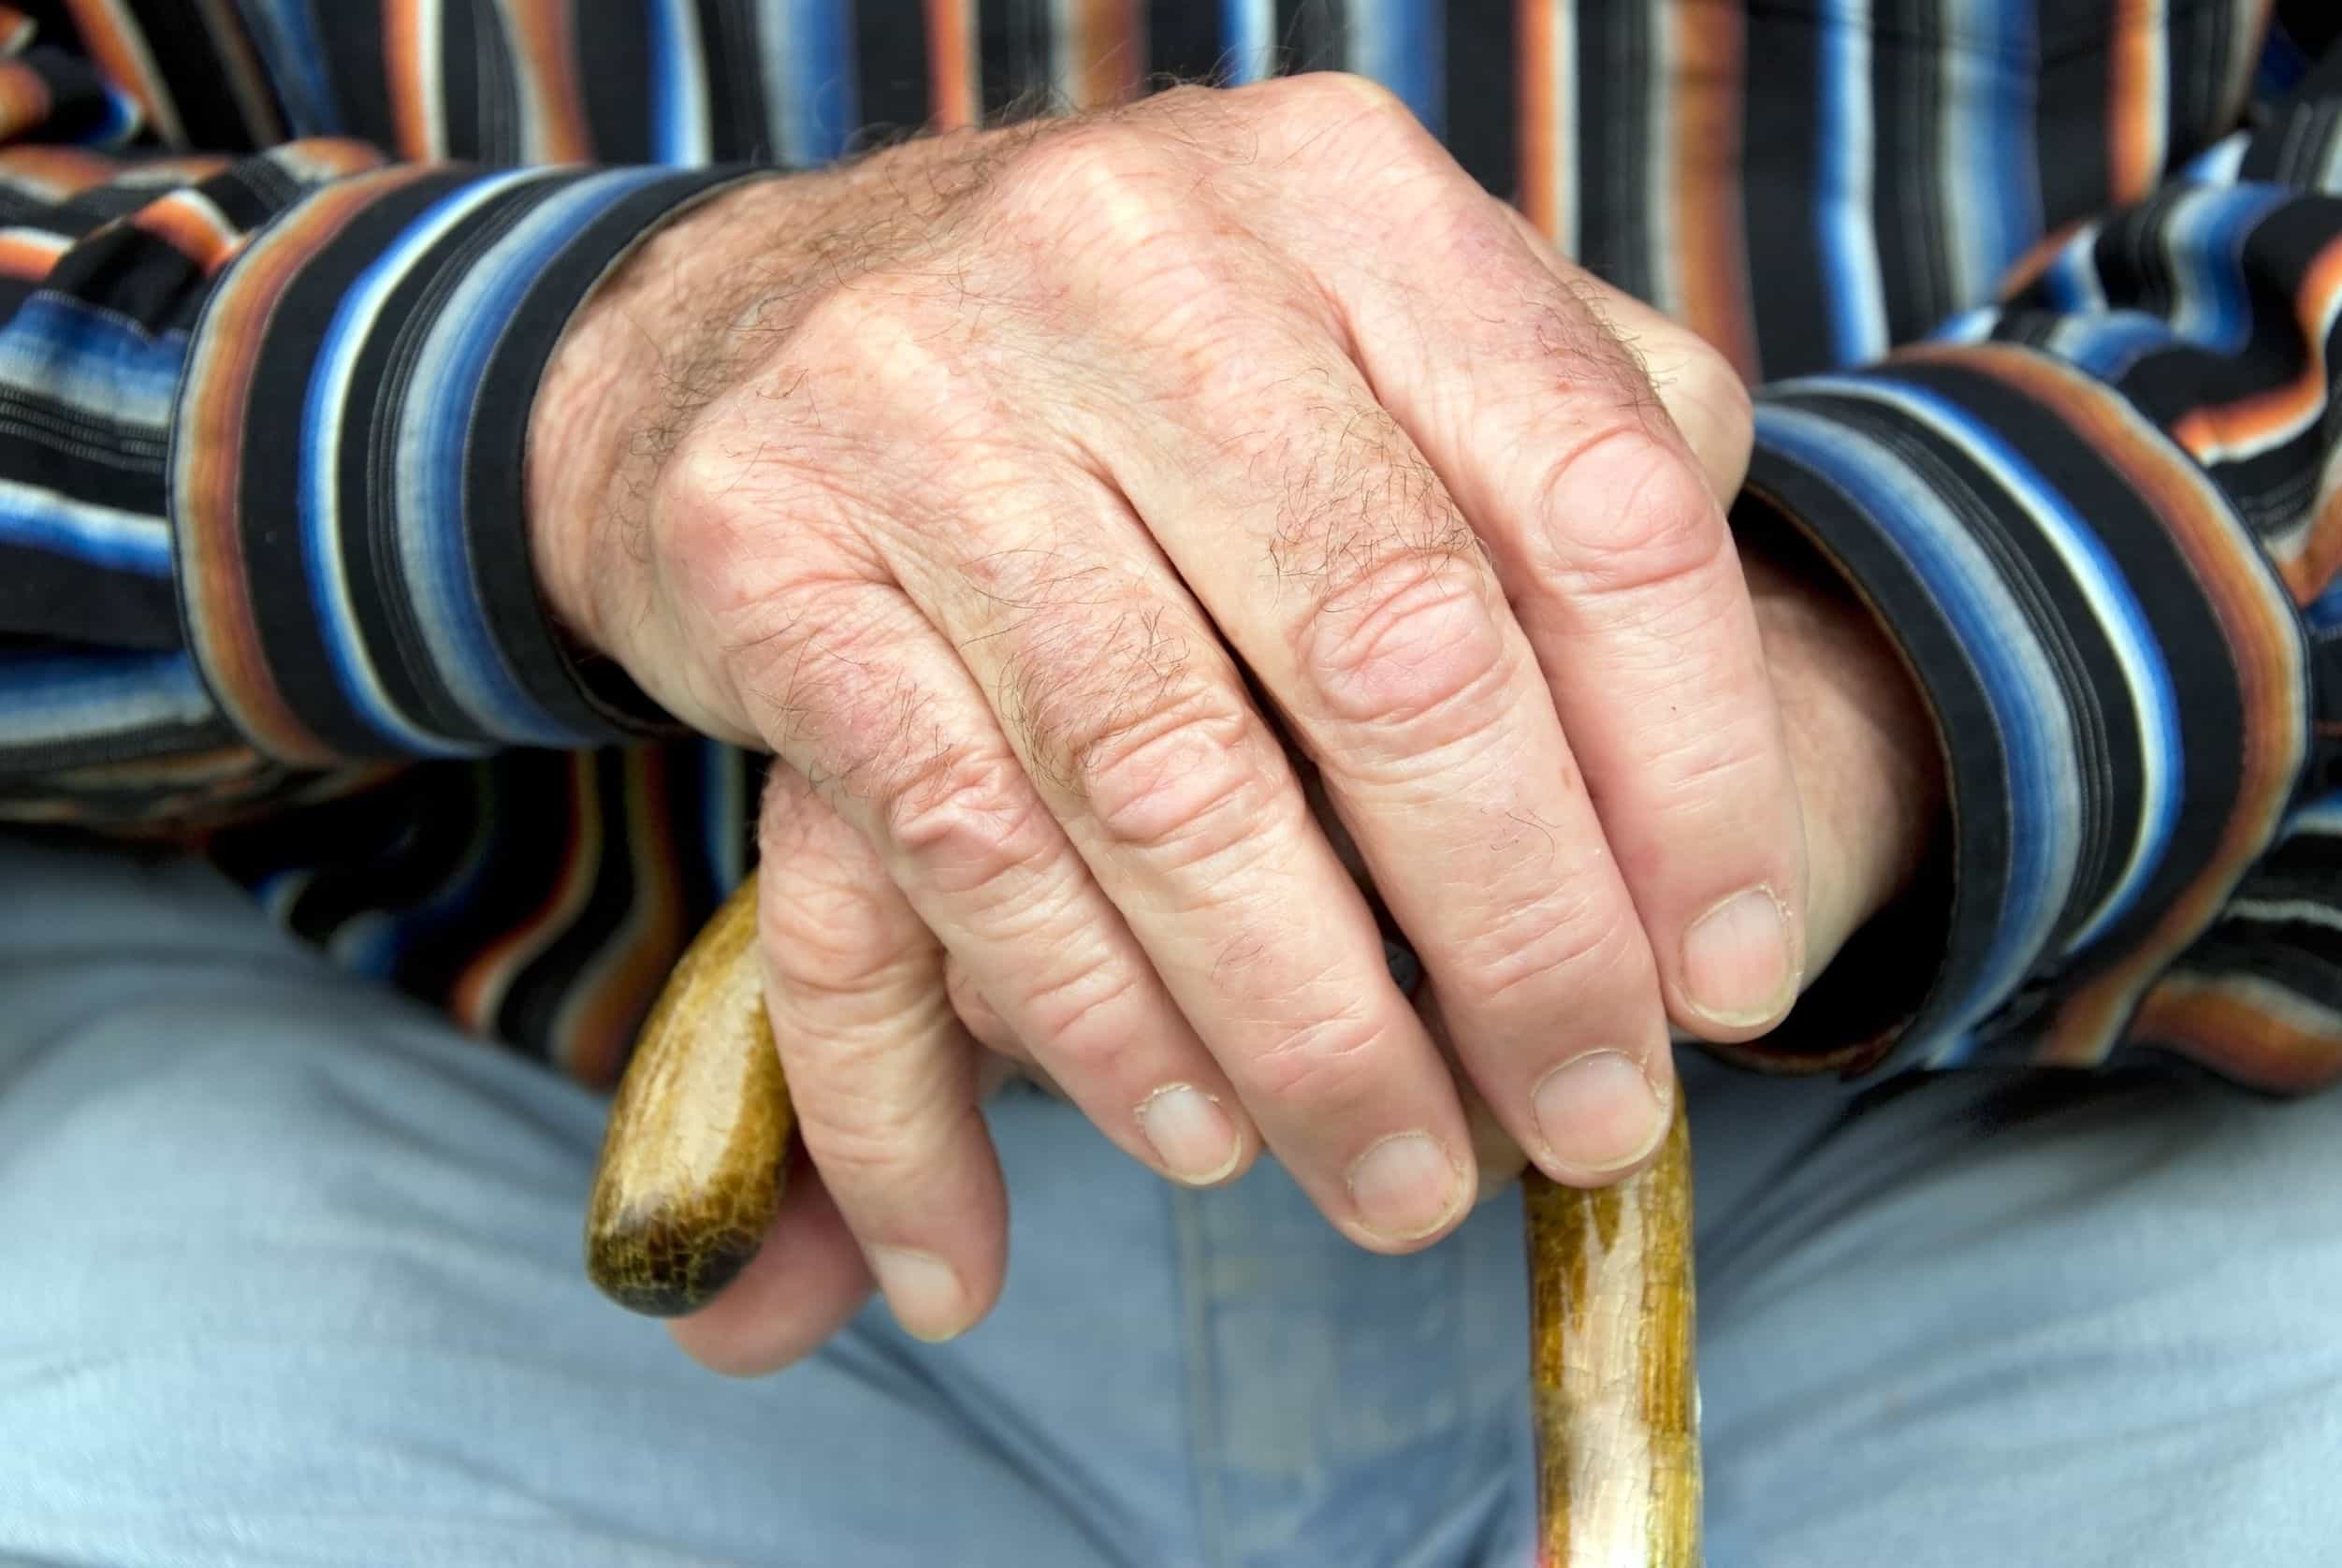 7669988 - hand of a senior man holding a cane